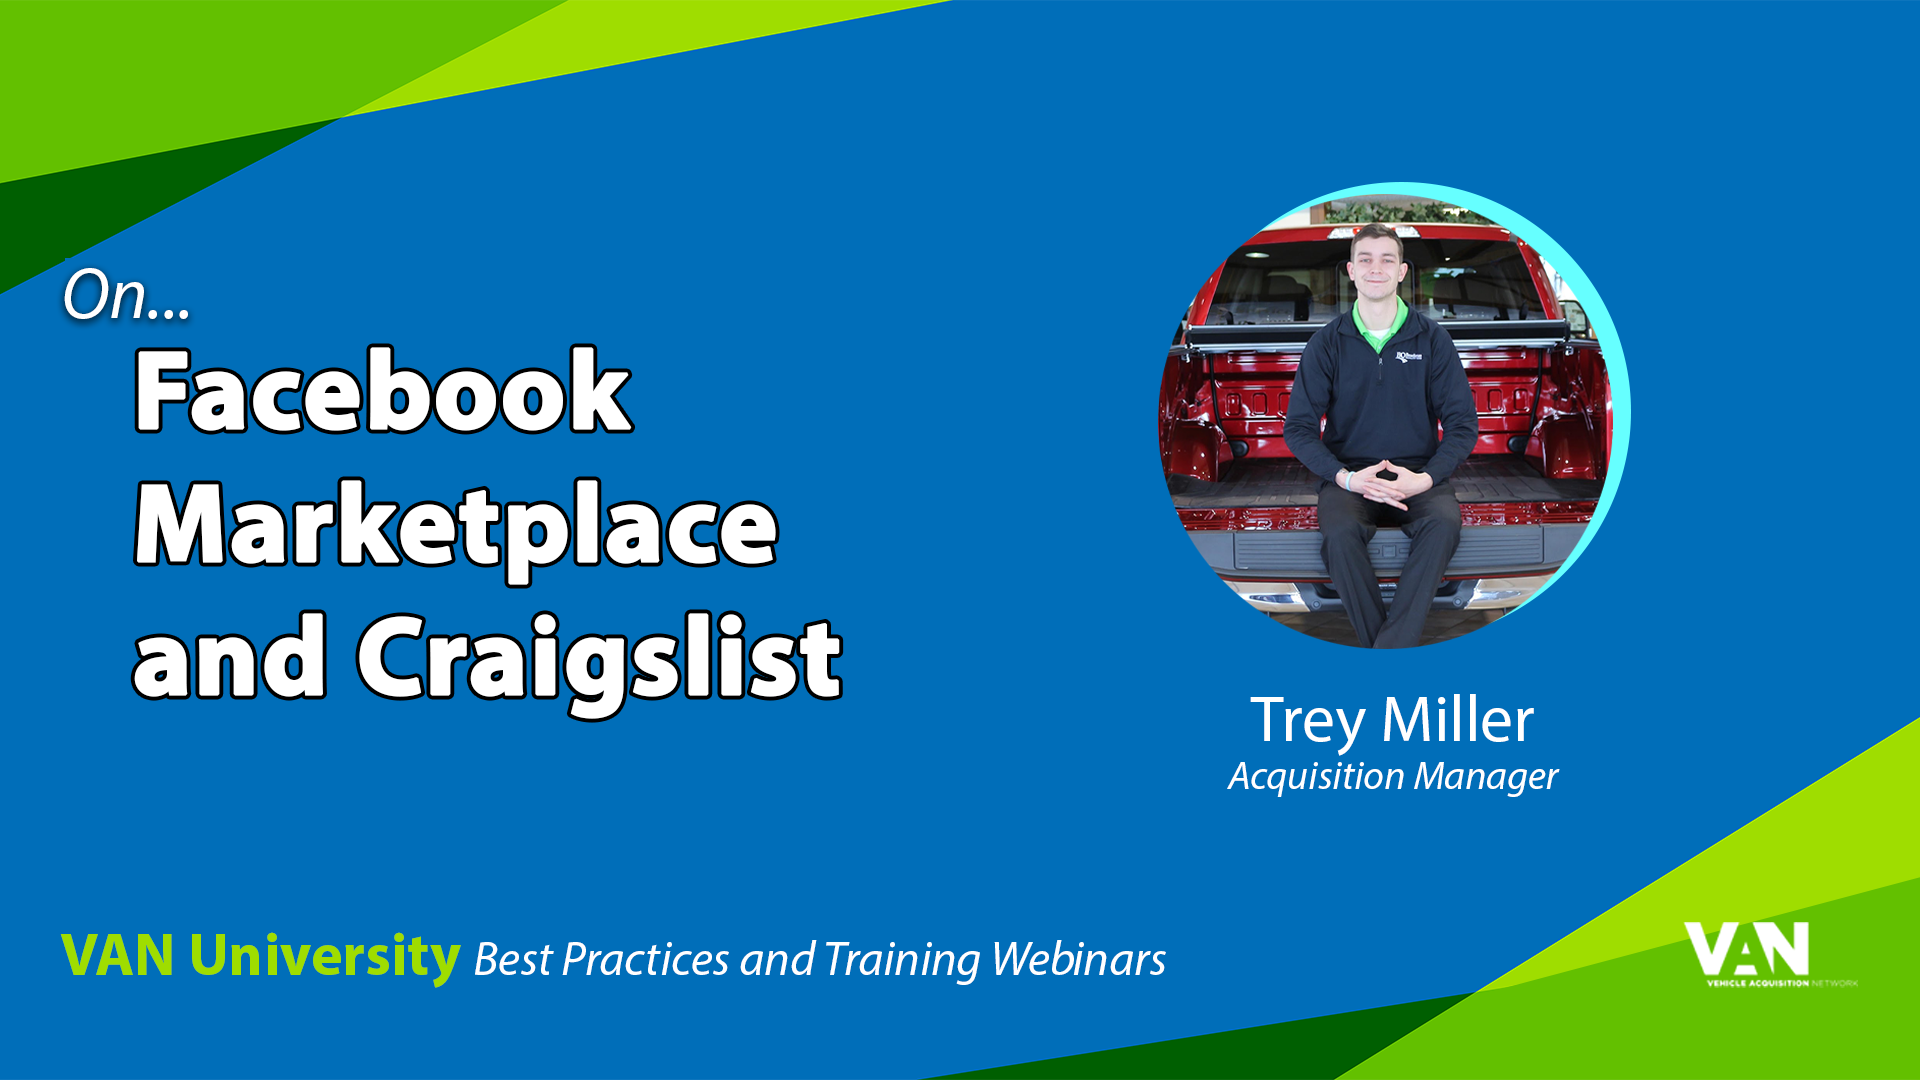 Acquisition Manager Trey Miller on Facebook Marketplace and Craigslist as vehicle acquisition sources